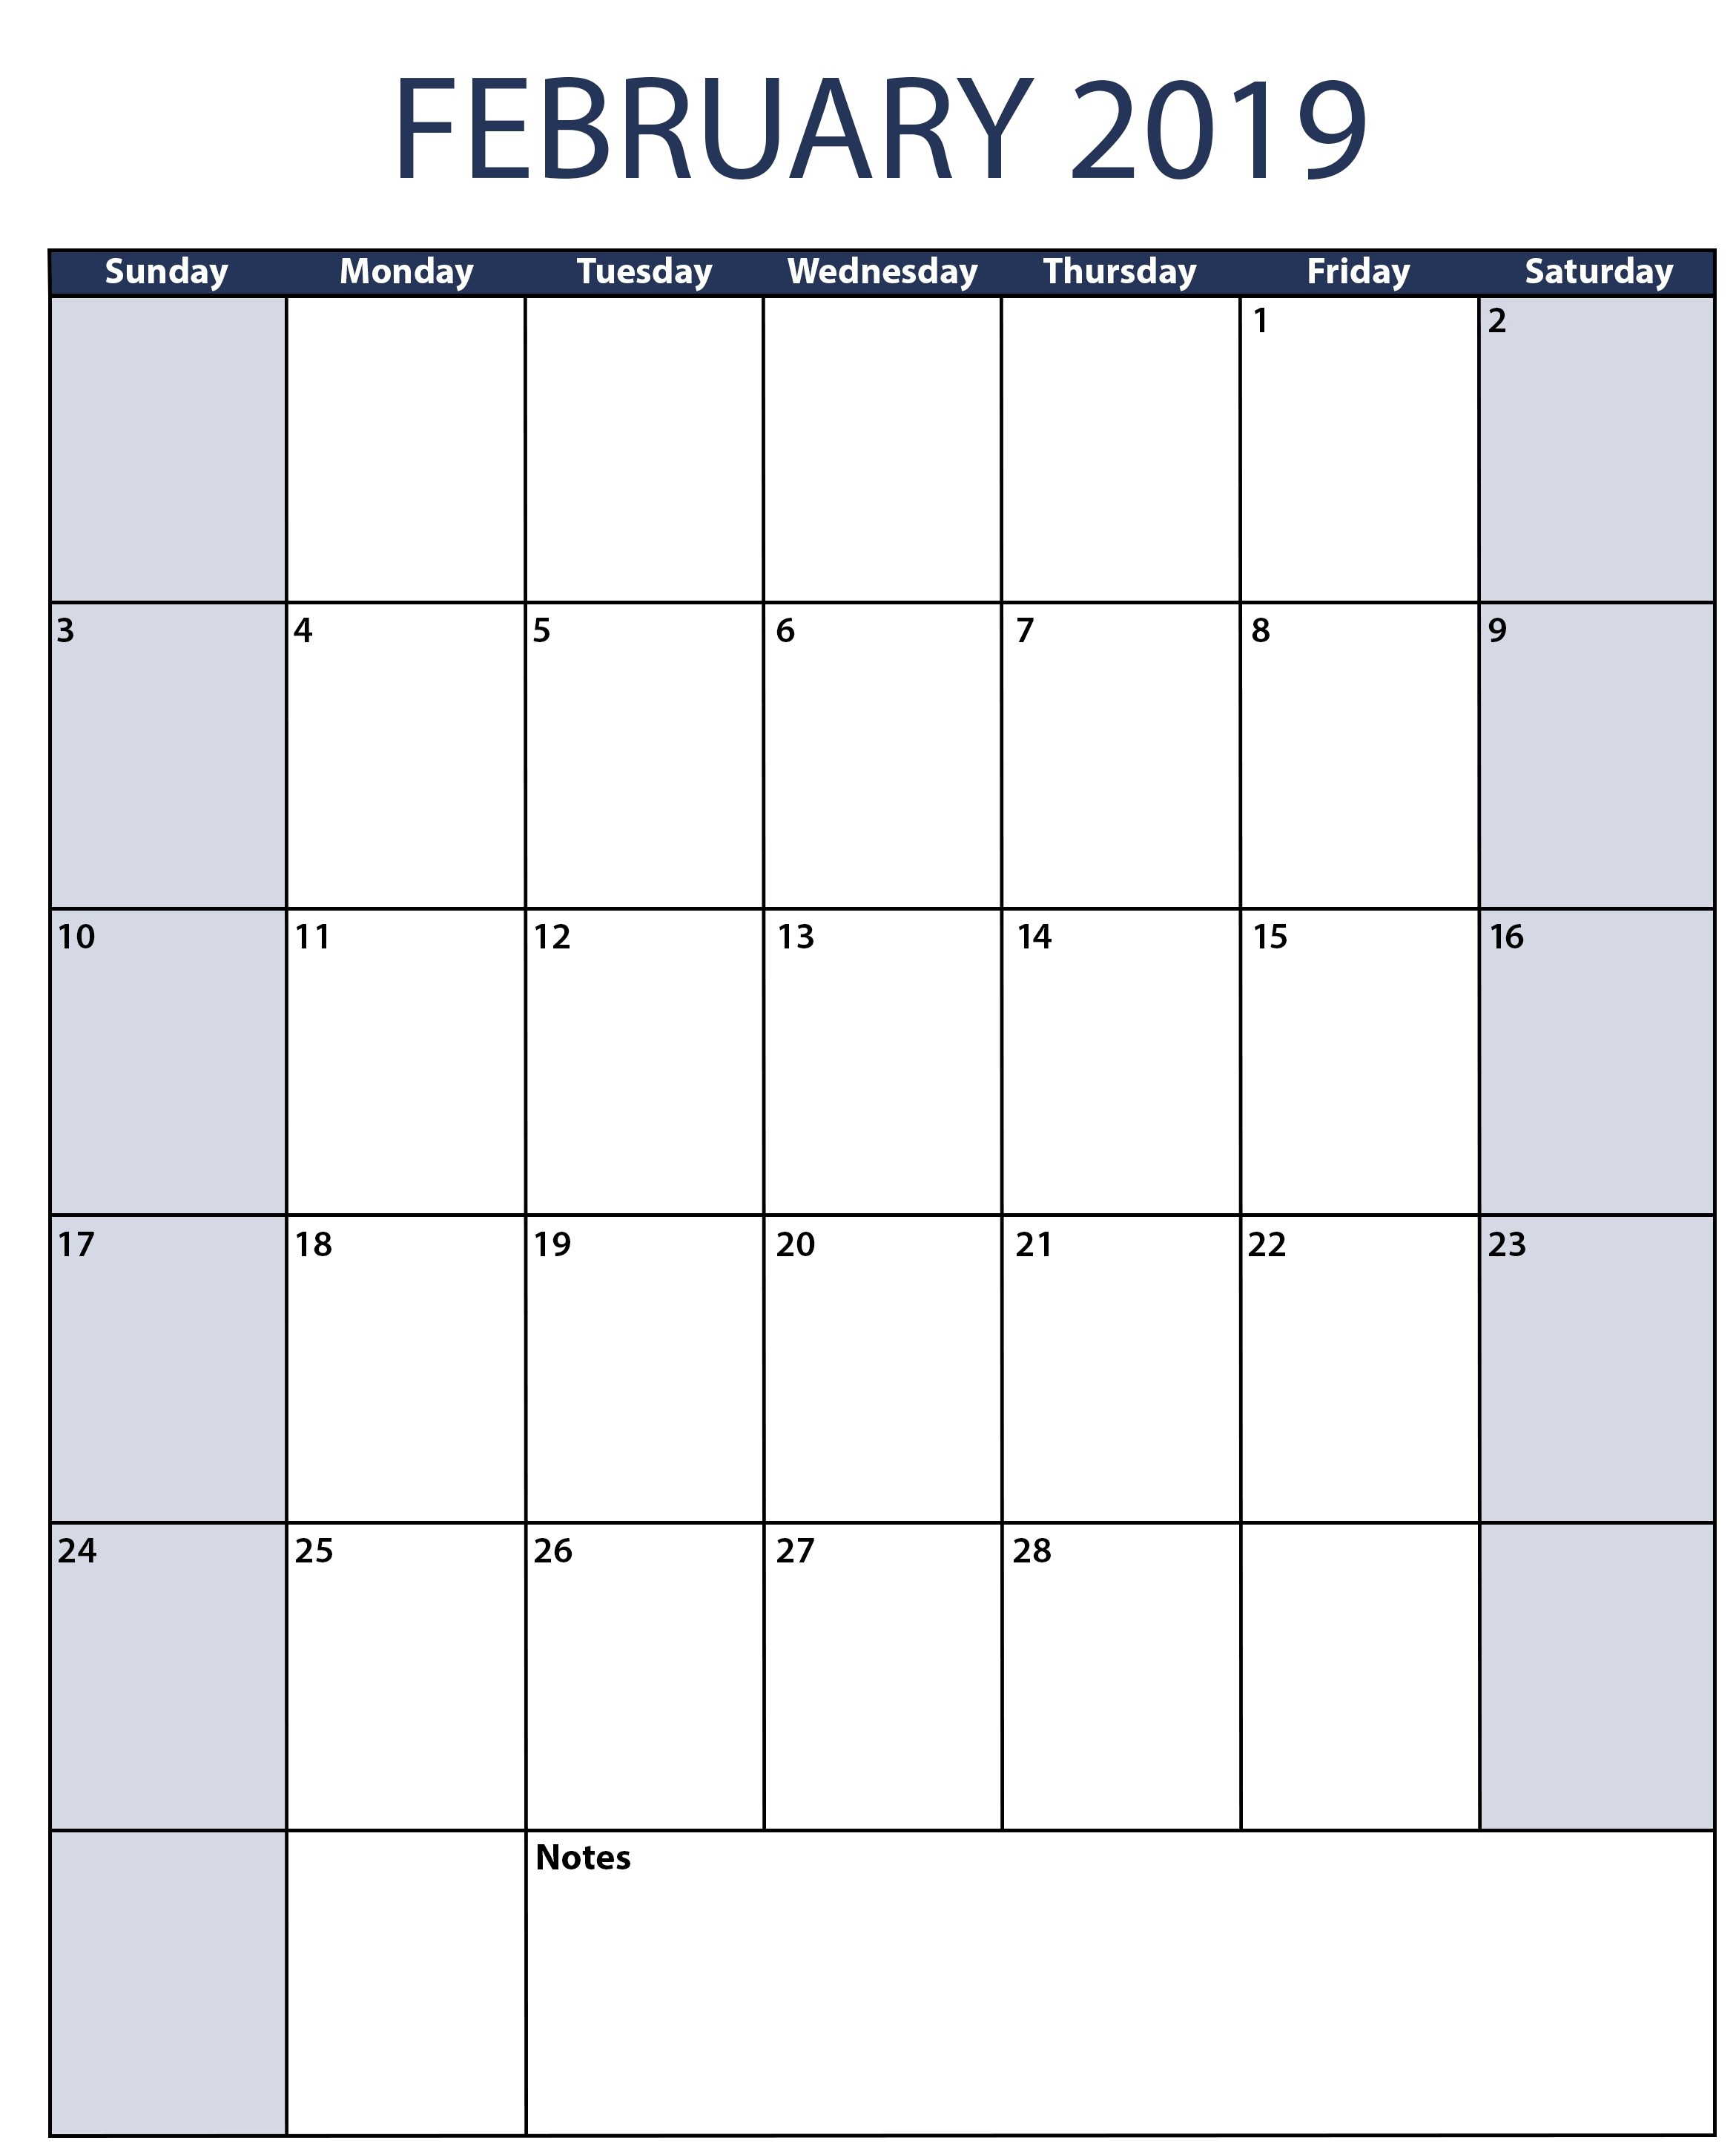 March 2018 Calendar Kalnirnay Más Actual Editable Calendar February 2019 Lara Expolicenciaslatam Of March 2018 Calendar Kalnirnay Más Recientes Pin by 4khd On August 2018 Calendar Printable